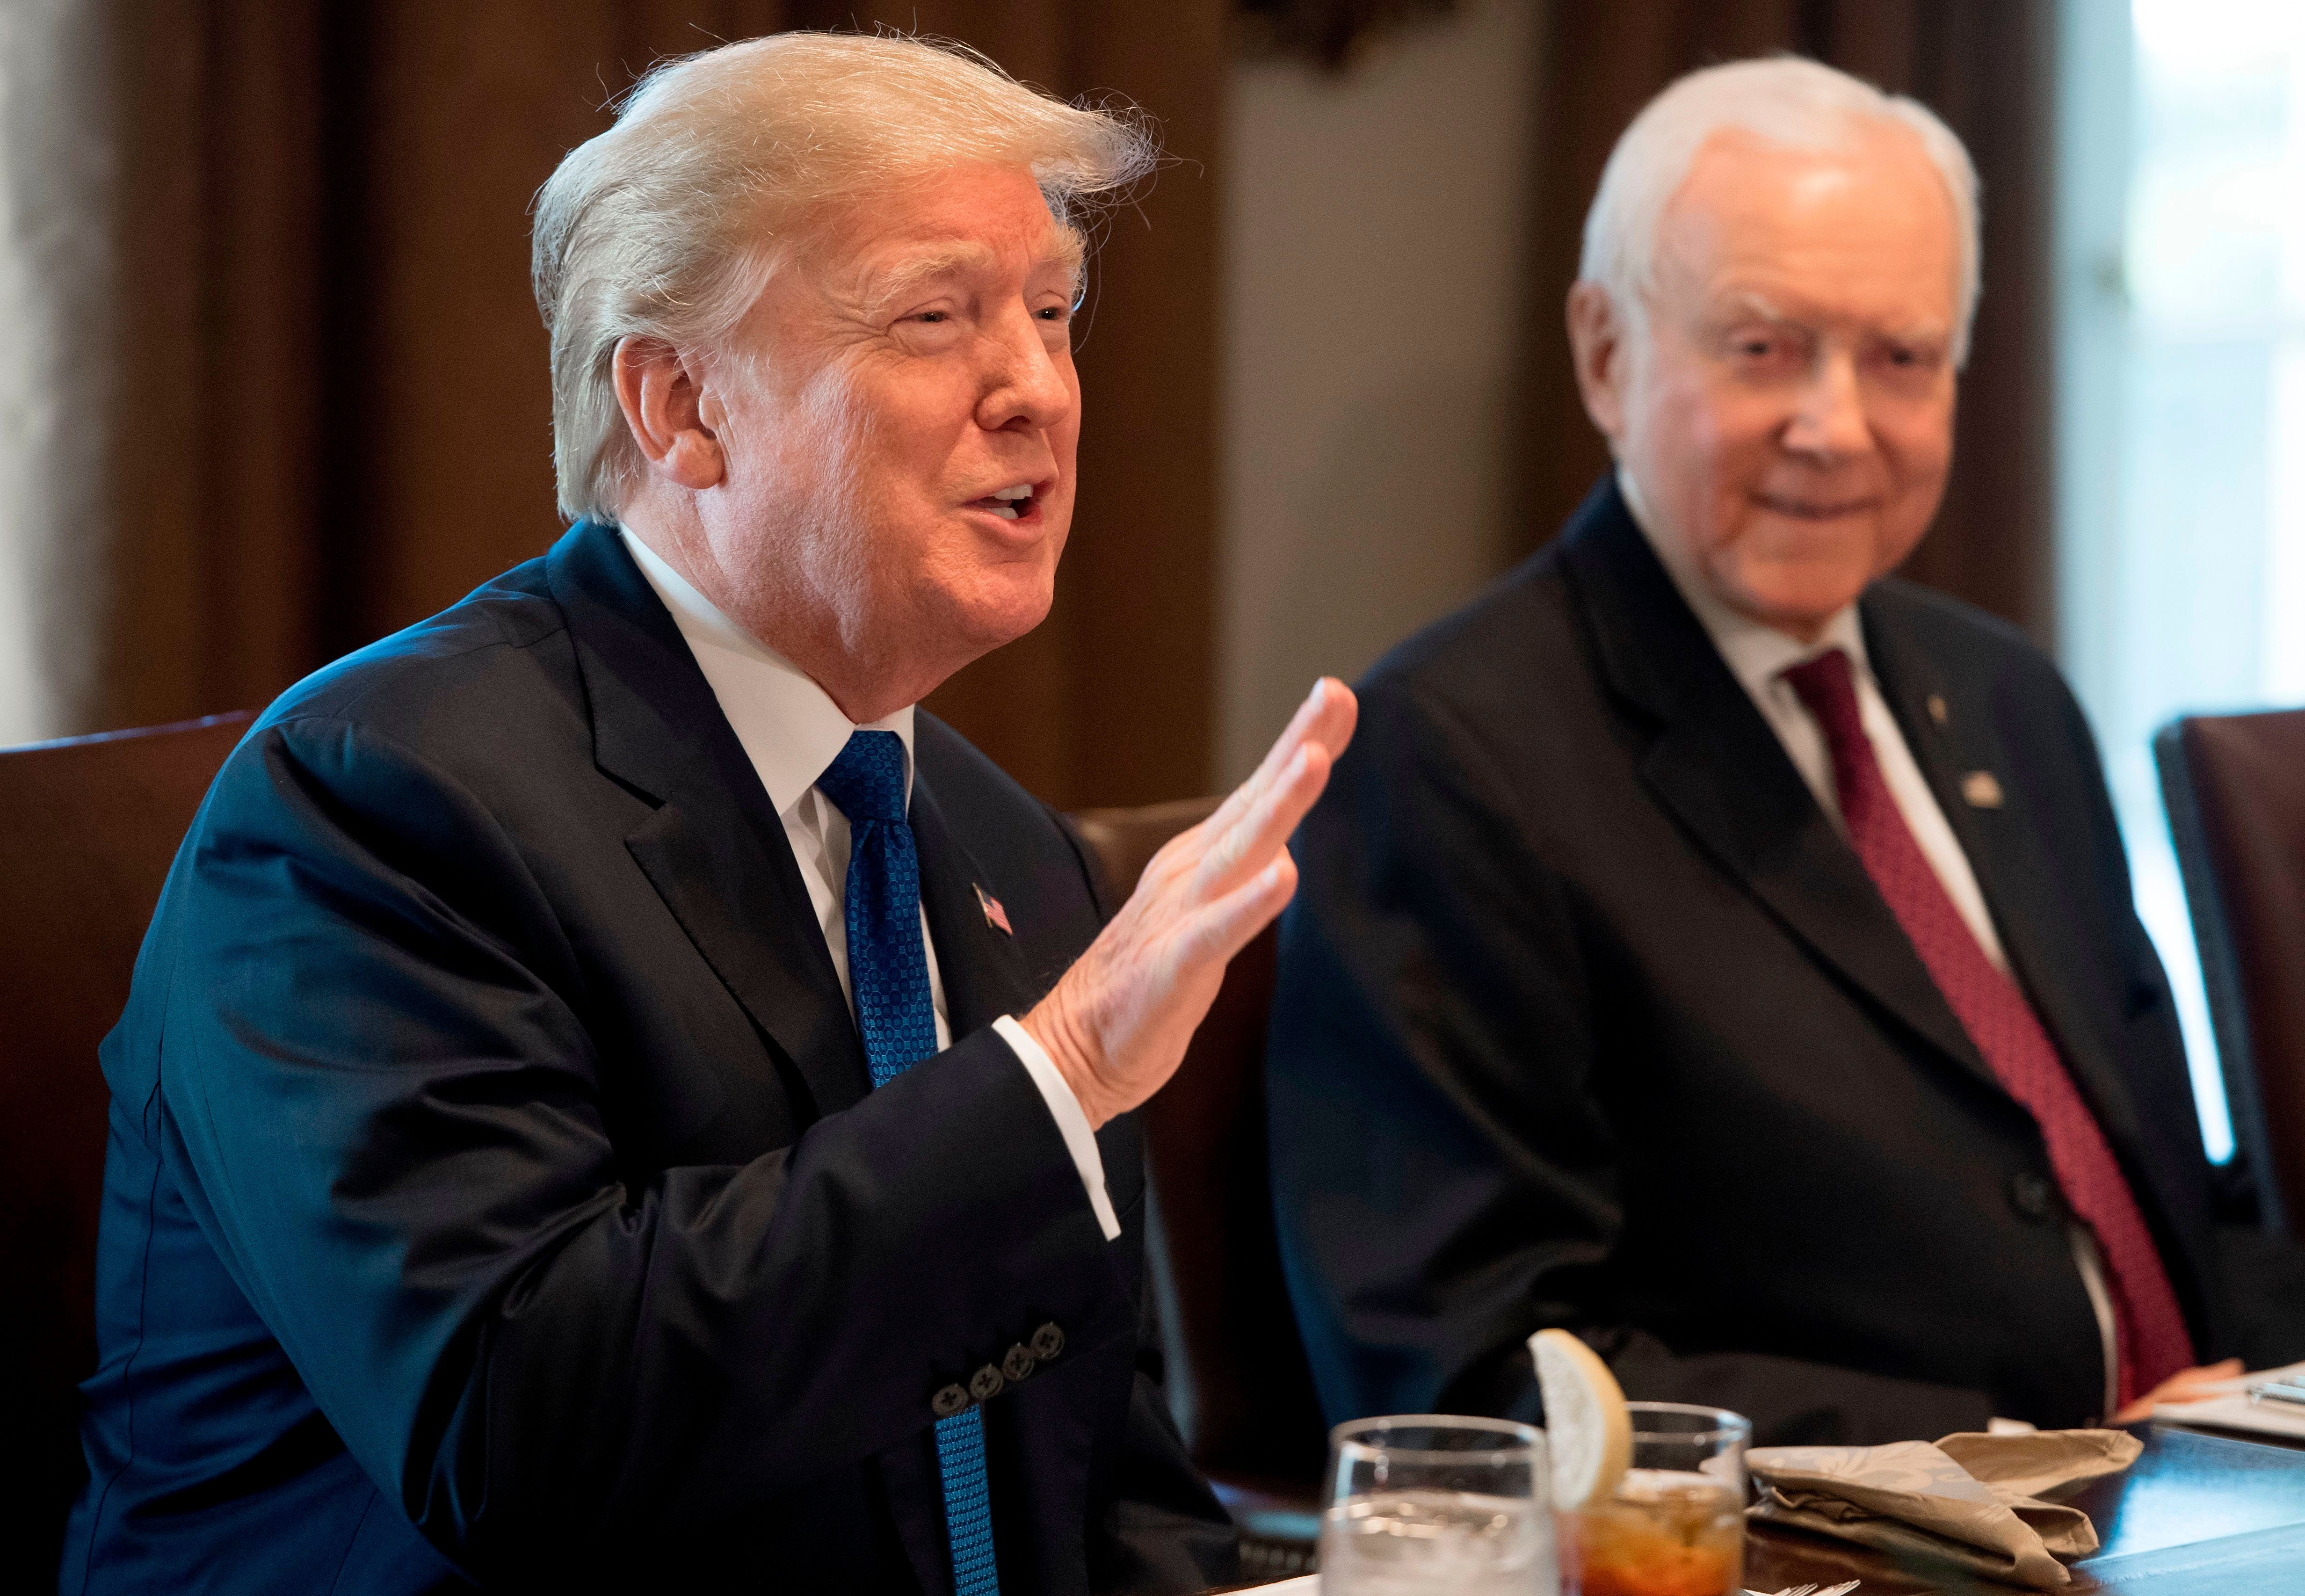 US President Donald Trump speaks about tax reform legislation during a lunch with lawmakers working on the tax reform conference committee, including Senator Orrin Hatch (R), Republican of Utah, in the Cabinet Room at the White House in Washington, DC, December 13, 2017. / AFP PHOTO / SAUL LOEB        (Photo credit should read SAUL LOEB/AFP/Getty Images)